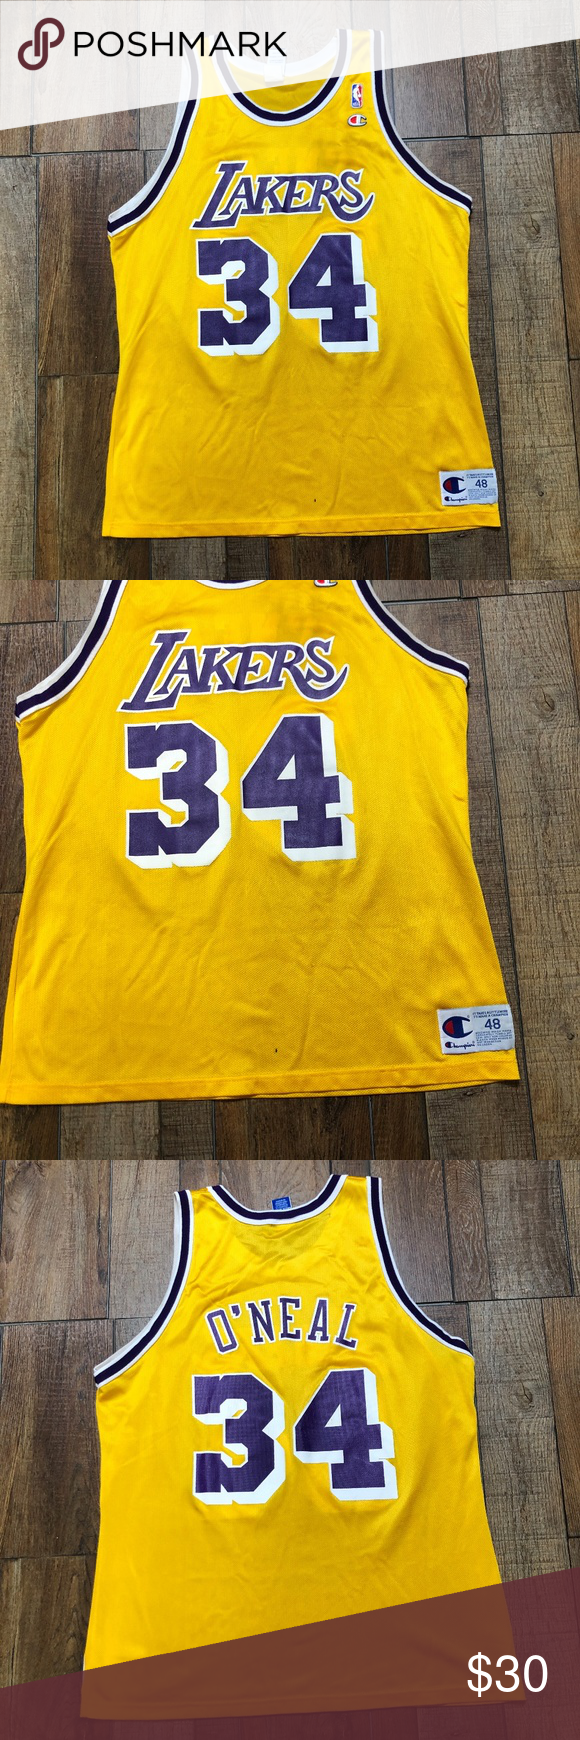 e8fb4dd23 Shaquille O Neal Los Angeles Lakers NBA Jersey Shaquille O Neal  34 Vintage